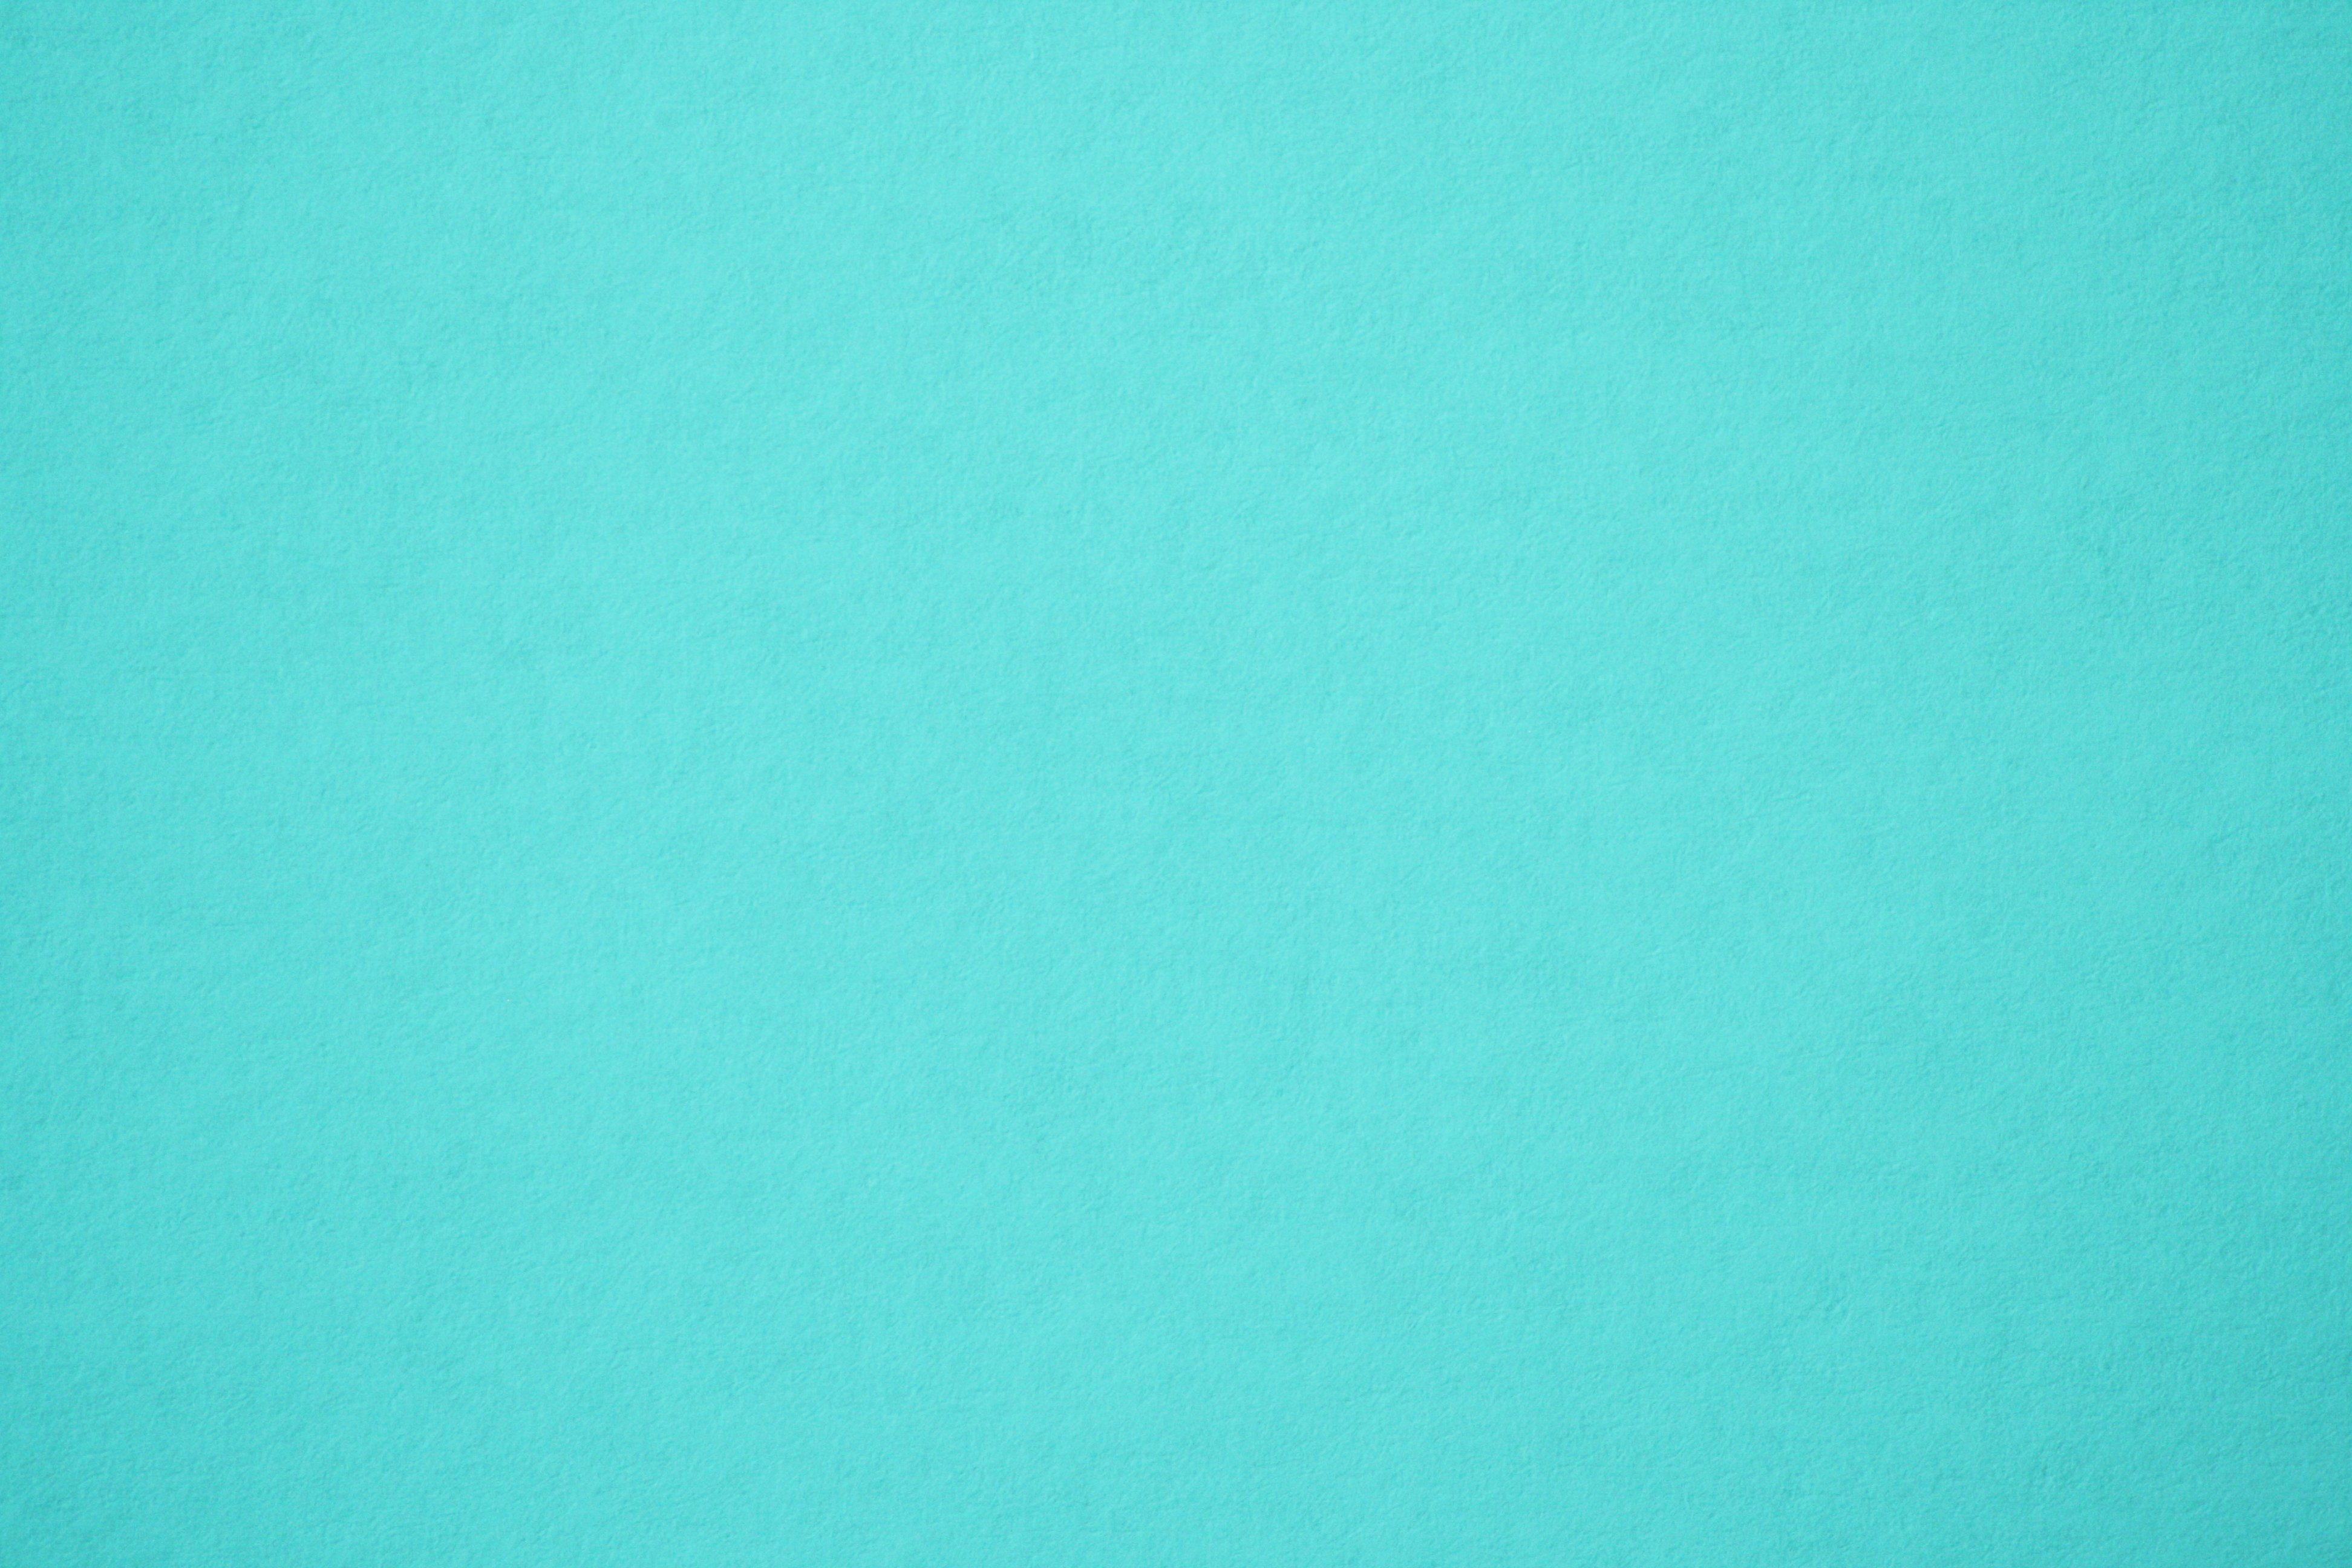 Turquoise Paper Texture - Free High Resolution Photo - Dimensions    Brown Paper Texture